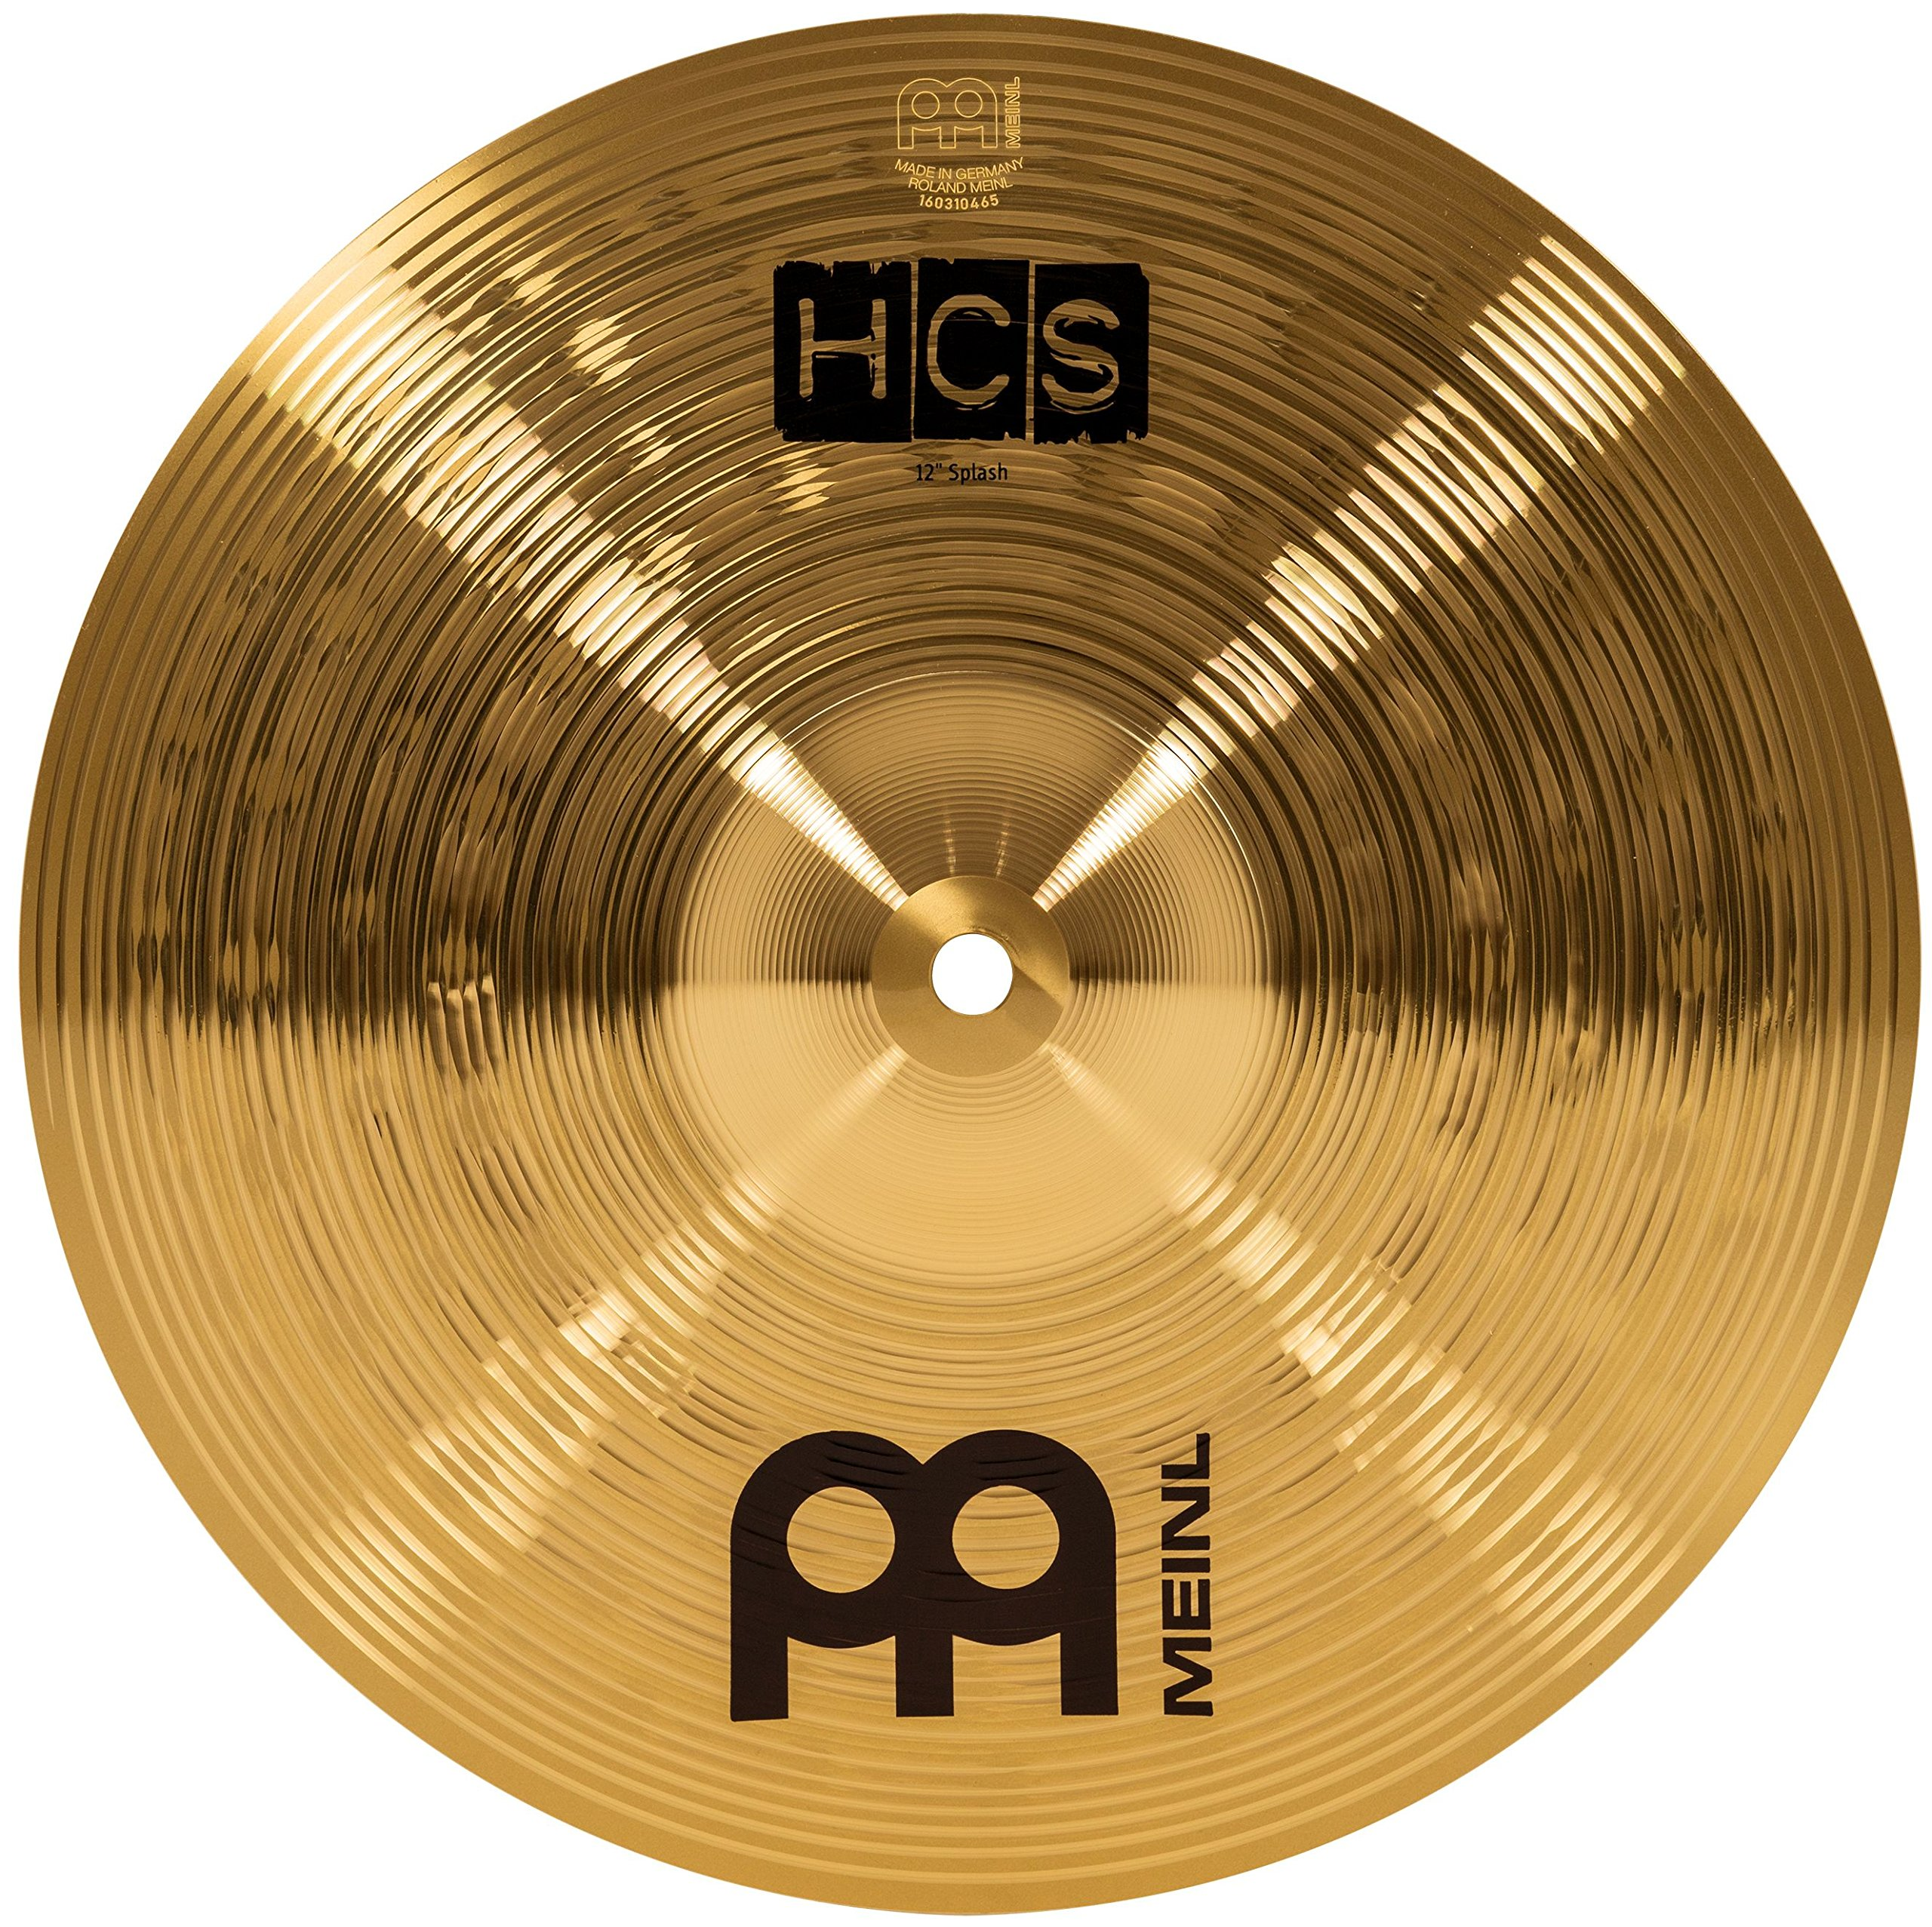 """Meinl 12"""" Splash Cymbal – HCS Traditional Finish Brass for Drum Set, Made In Germany, 2-YEAR WARRANTY (HCS12S)"""